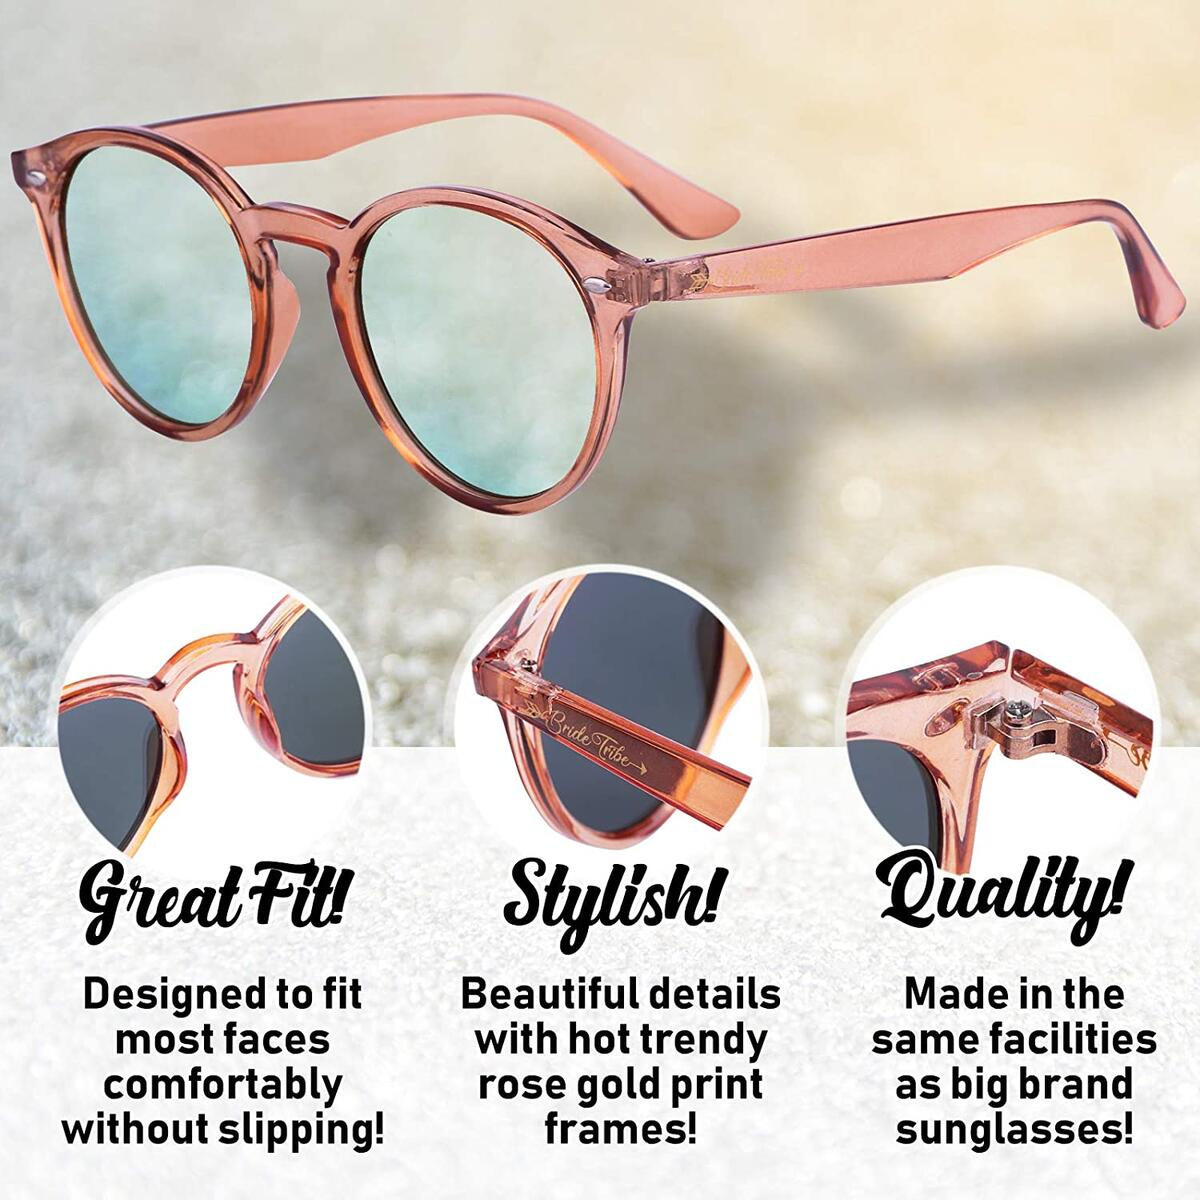 Bachelorette Party Sunglasses Bride Tribe Rose Gold Lens Glasses, Bridal Shower Gift and Favors - Instagram Bachelorette Party Decorations/Supplies (Single Pair)